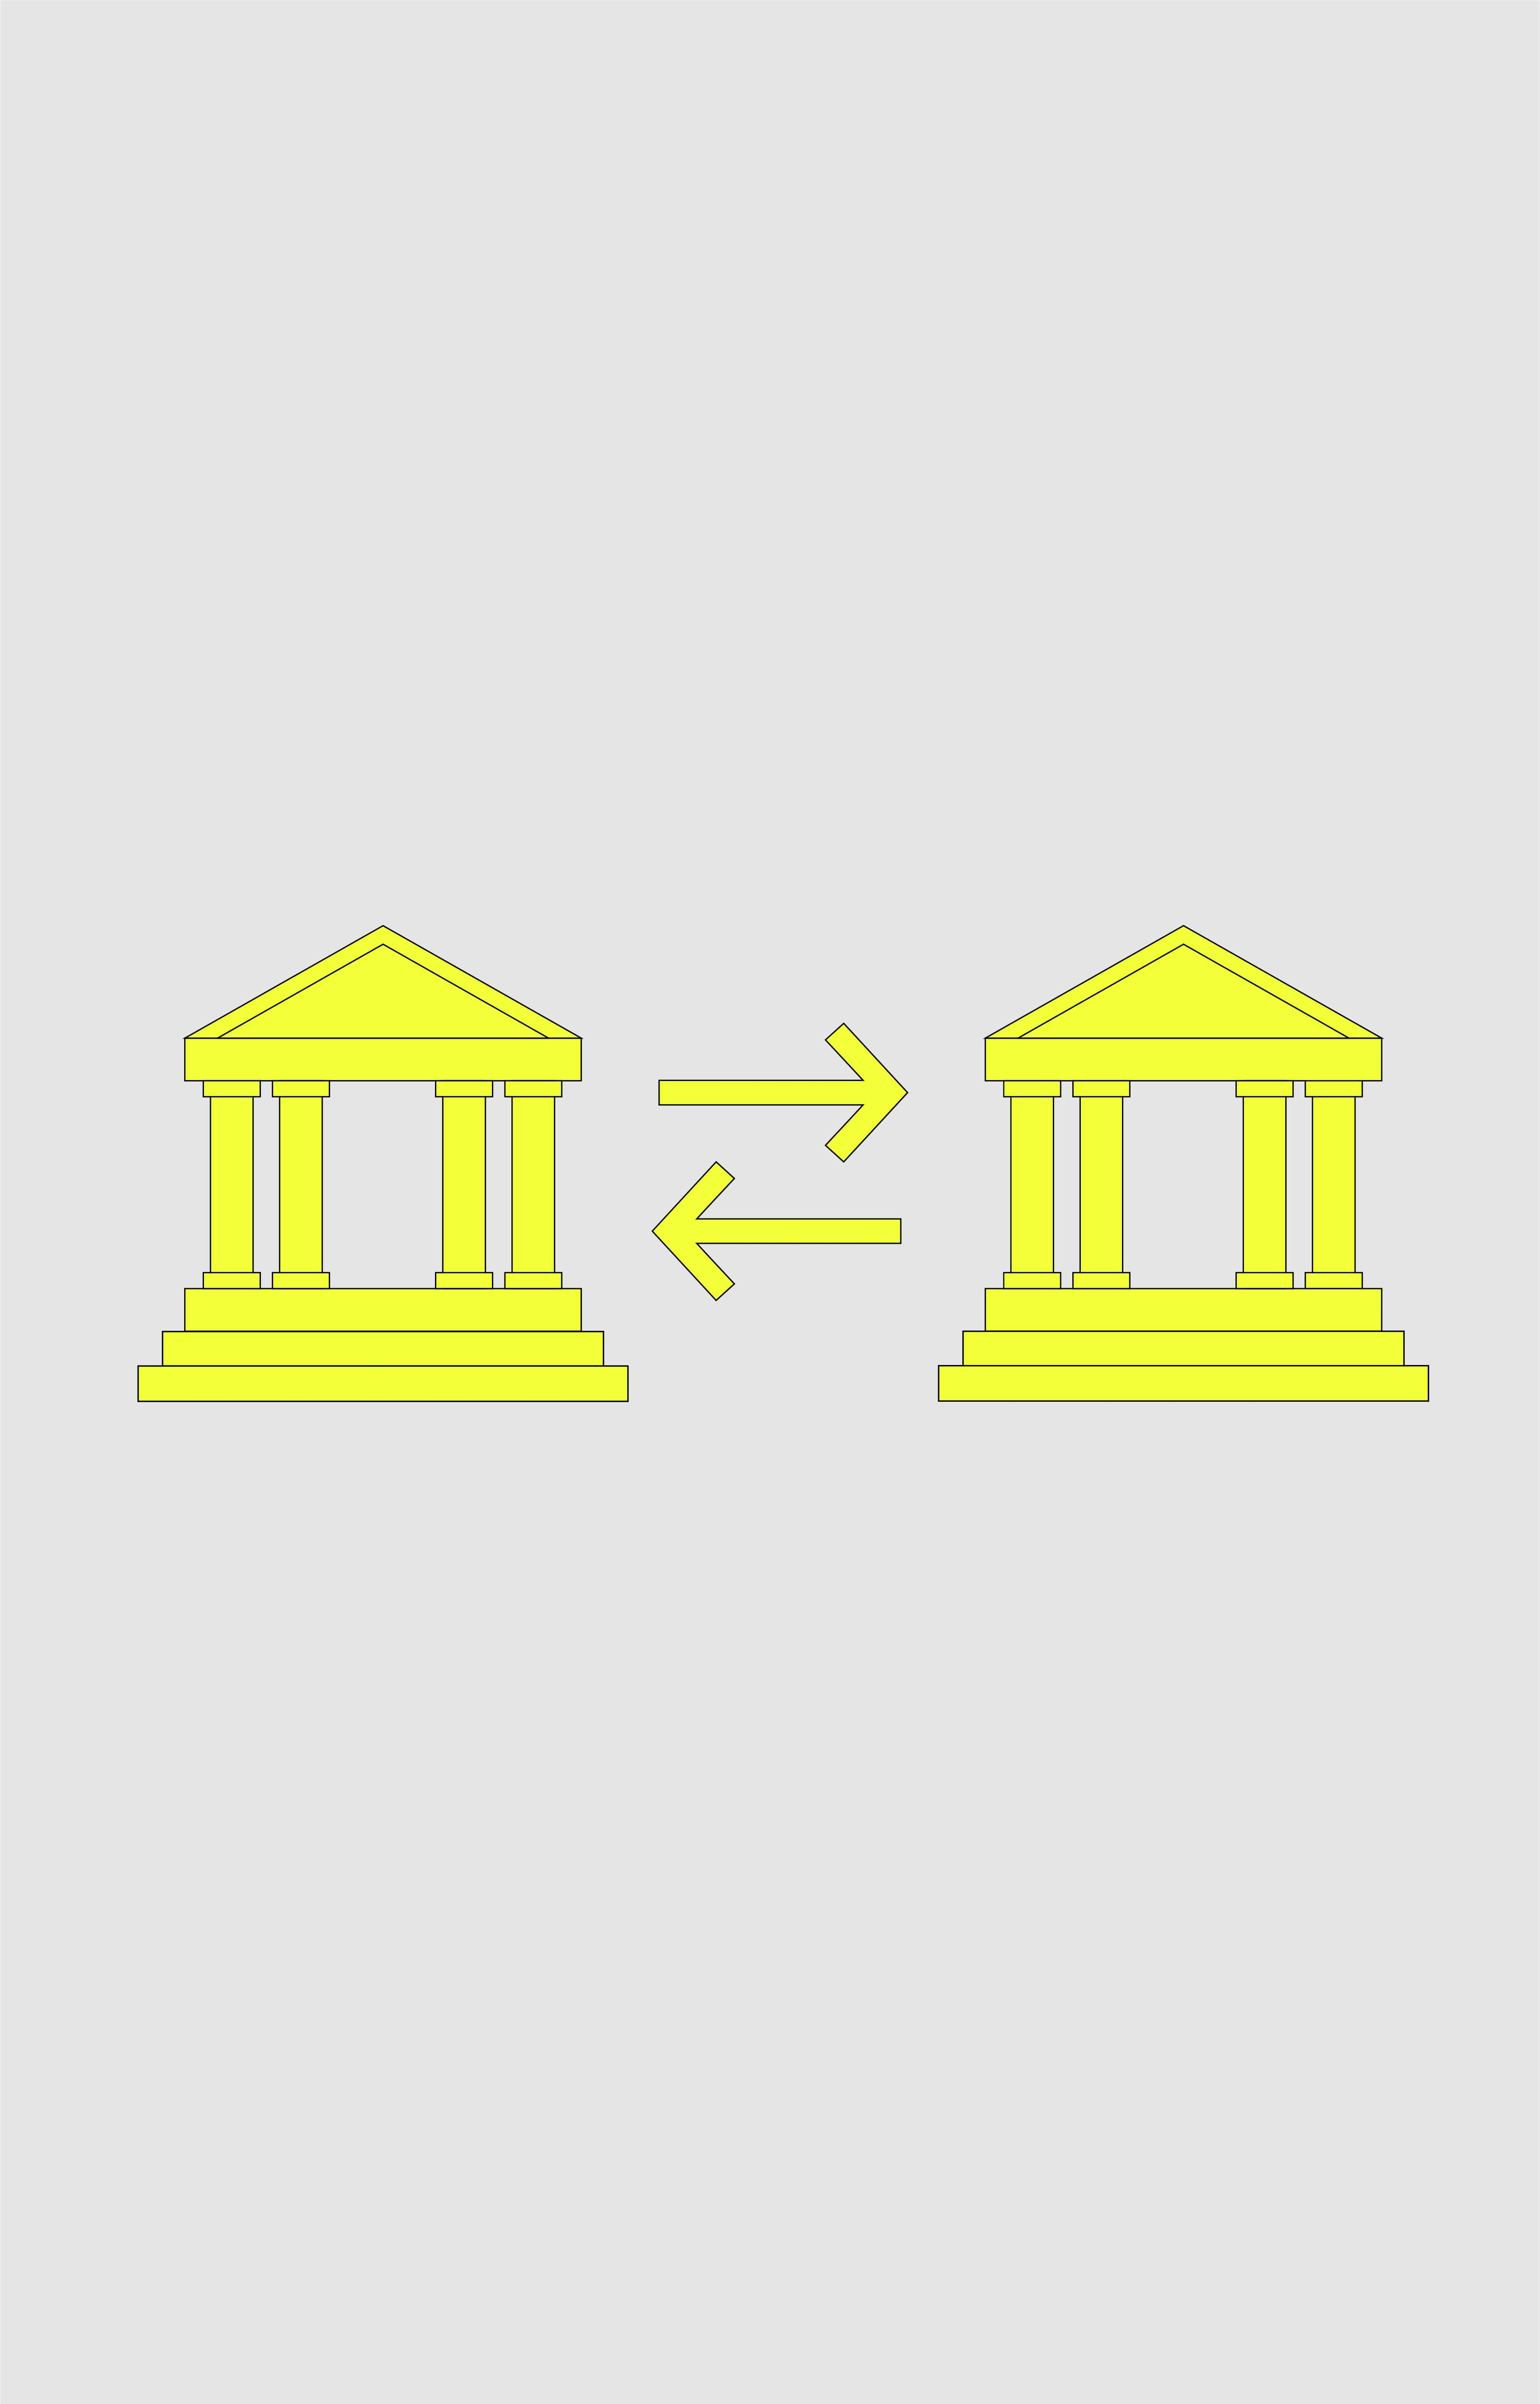 What Is an ACH Payment? The Low-Cost Electronic Funds Transfer System